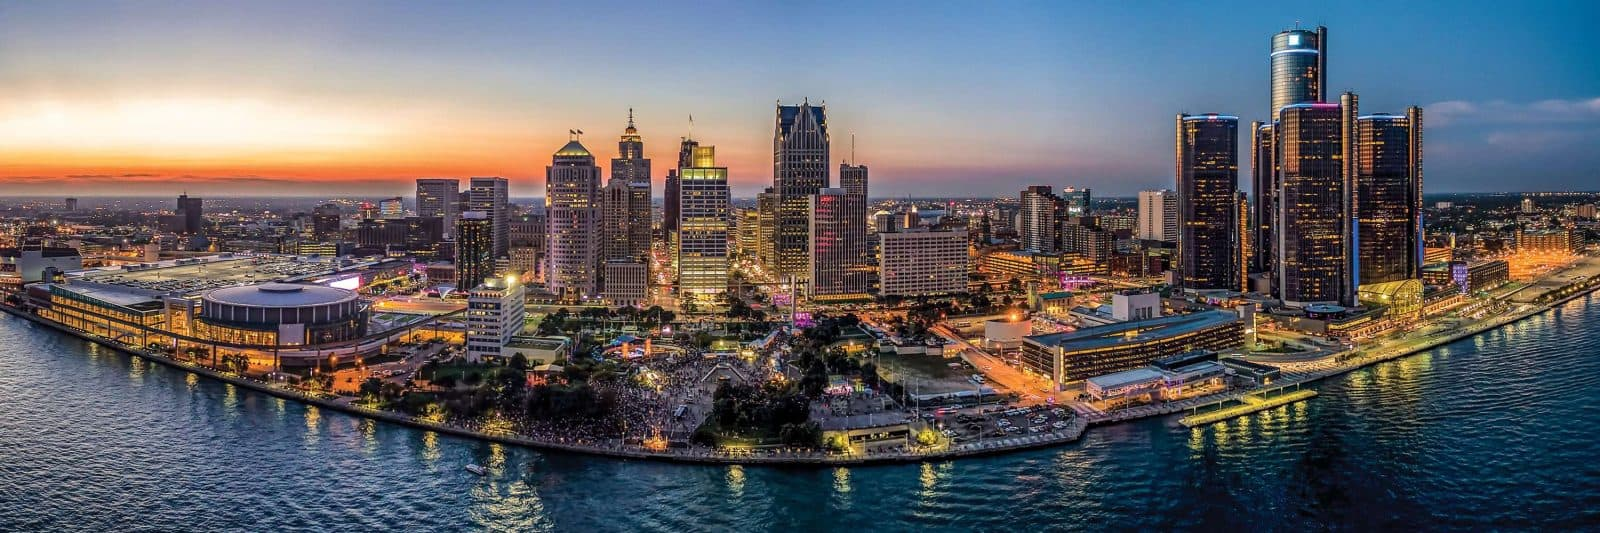 Where To Buy CBD in Michigan